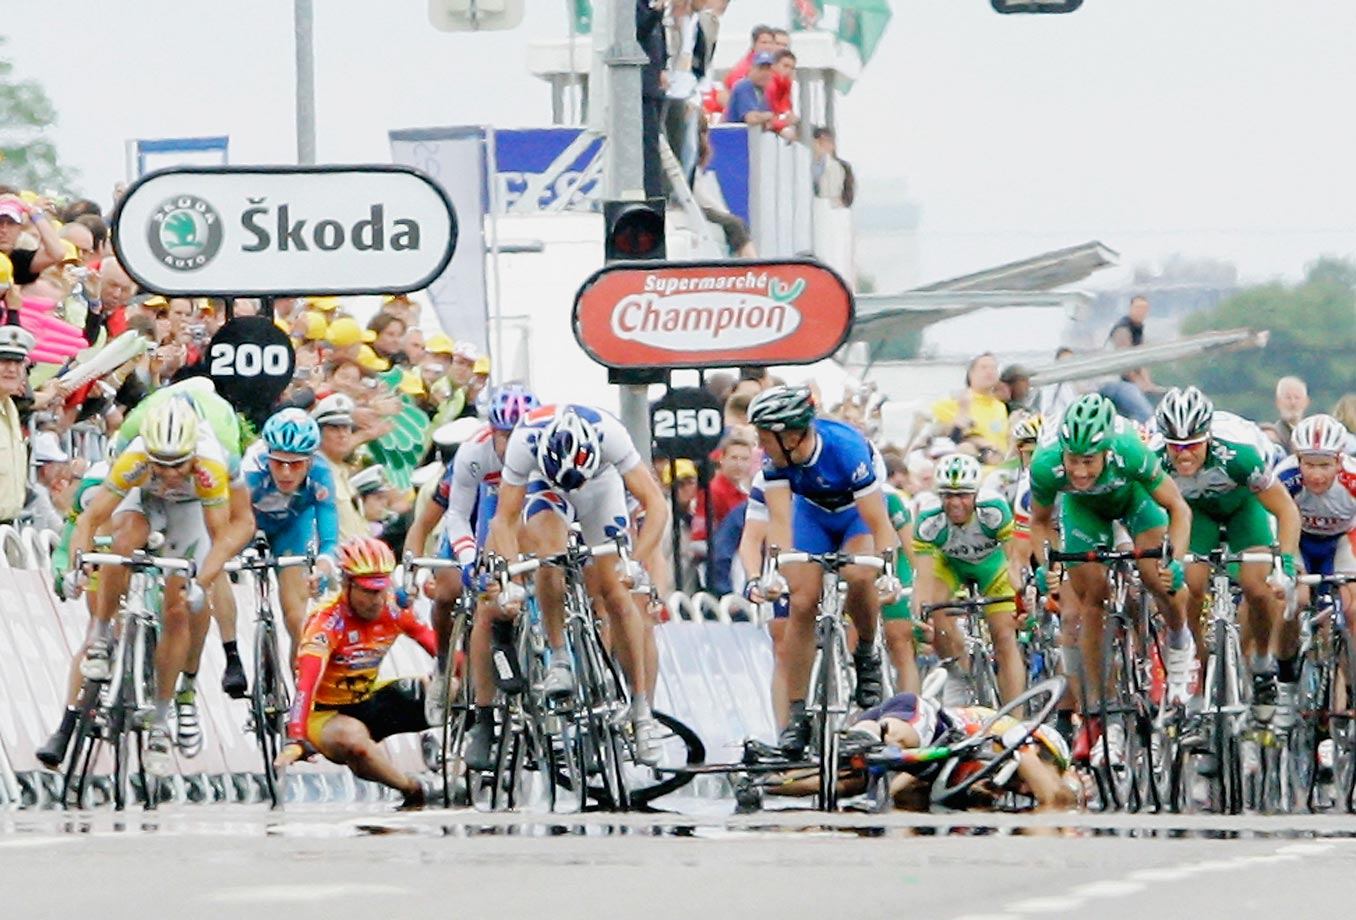 Another McEwen sprint victory, more carnage in his wake. Like Cipollini, McEwen won an even dozen stages of  the Tour – including this one, the 7th stage of the '05 Tour, in Karslruhe, Germany.